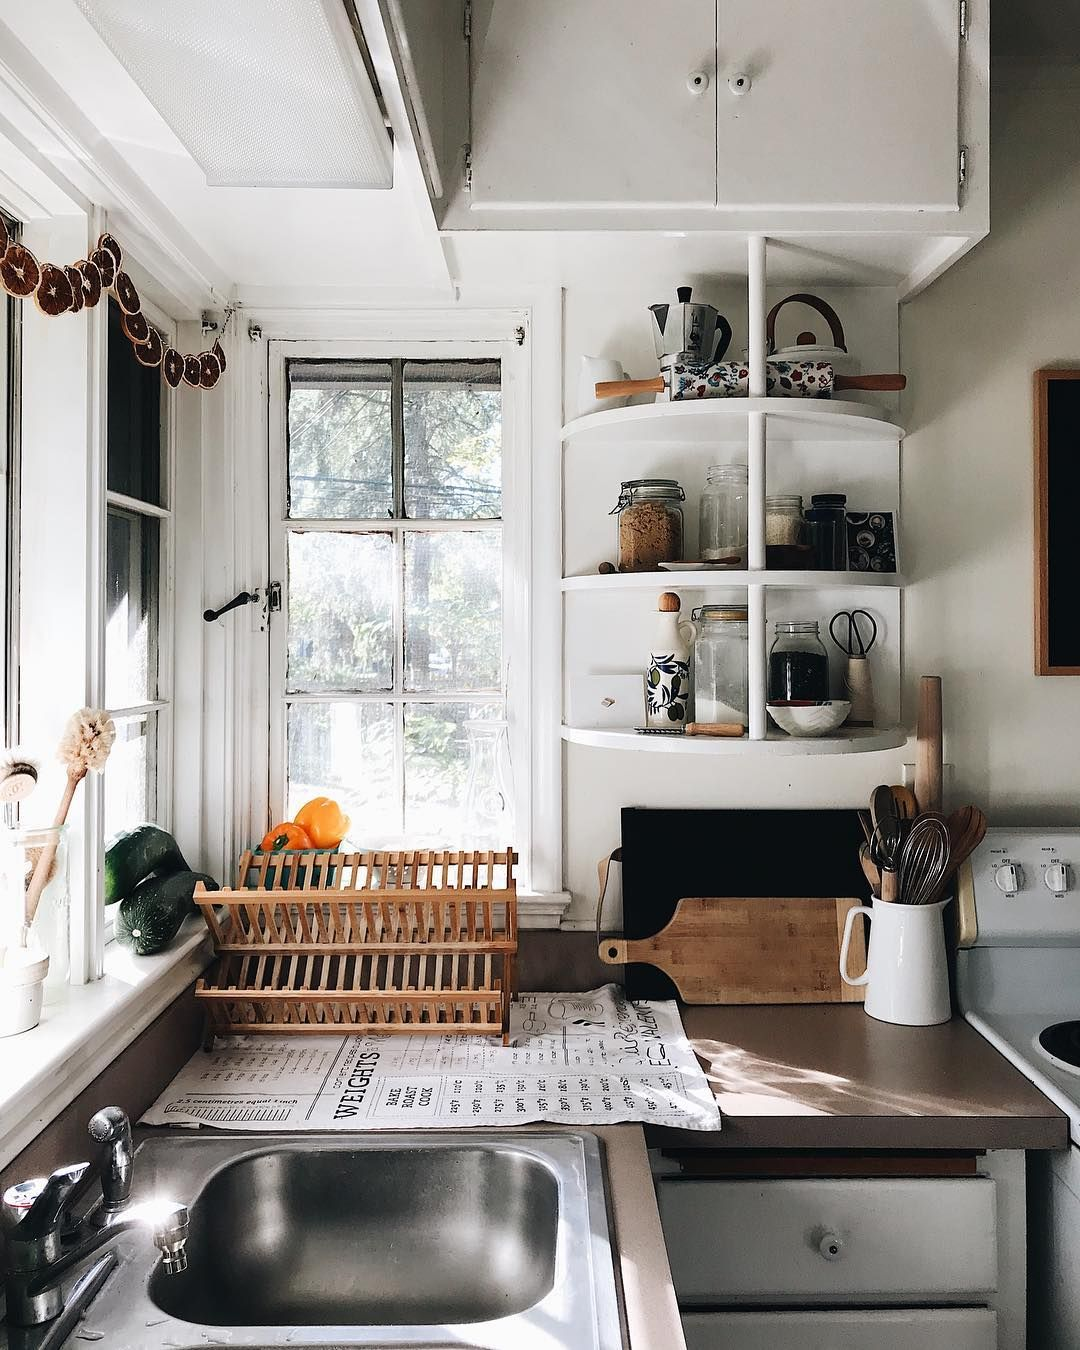 White slabs homes and interiors in pinterest kitchen home house also rh